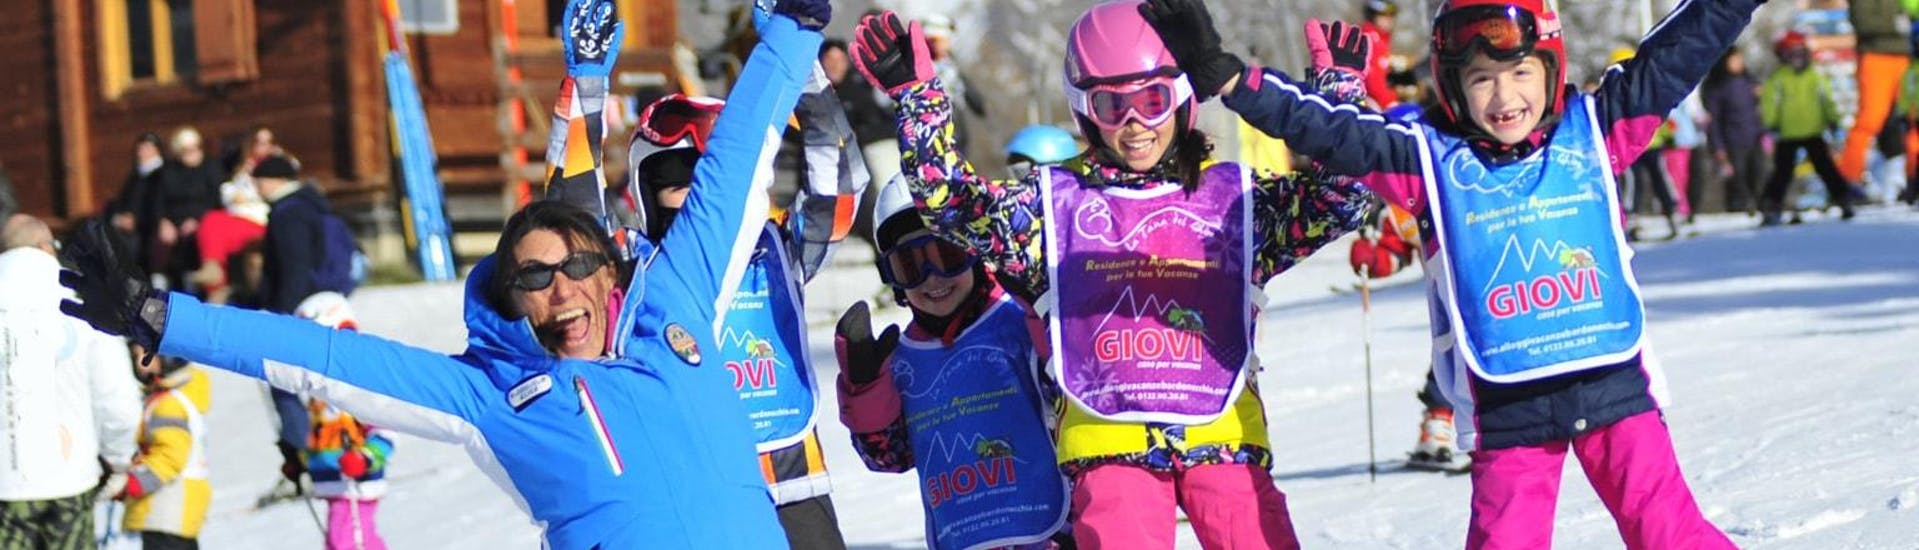 Kids are playing games and learn how to ski with their new friends in the Kids Ski Lessons (4-14 y.) - Low Season - Advanced under the supervision of an experienced ski instructor from the ski school Scuola di Sci Bardonecchia.